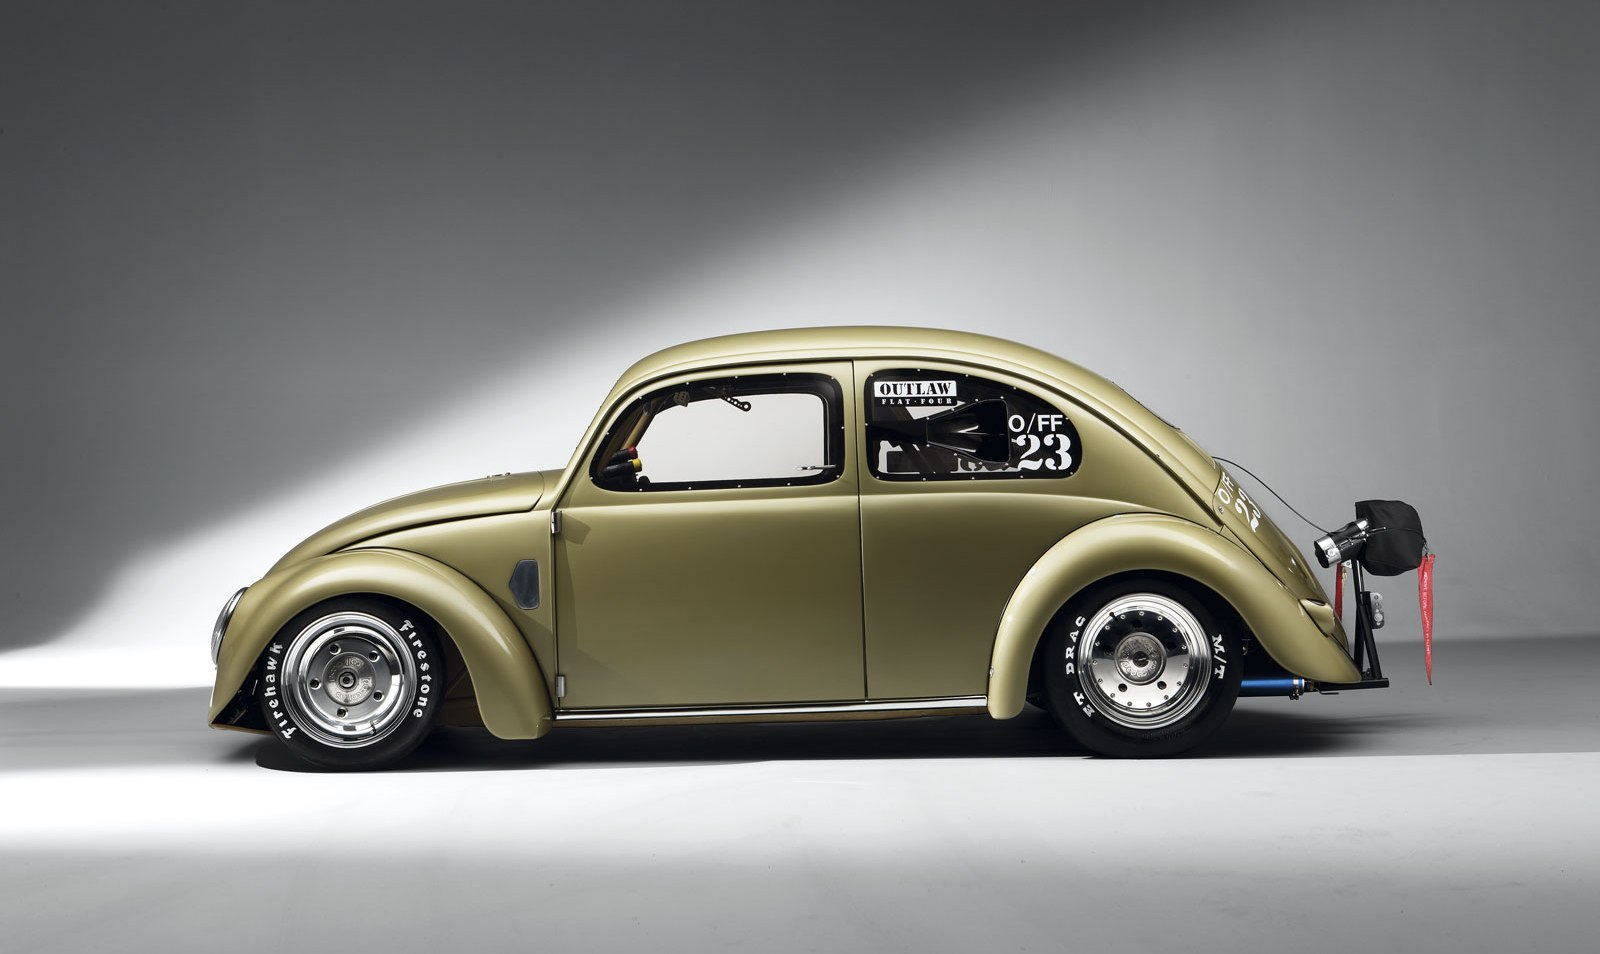 wallpaper Volkswagen Beetle Wallpaper Cars Background Wallpapers HD 1600x954